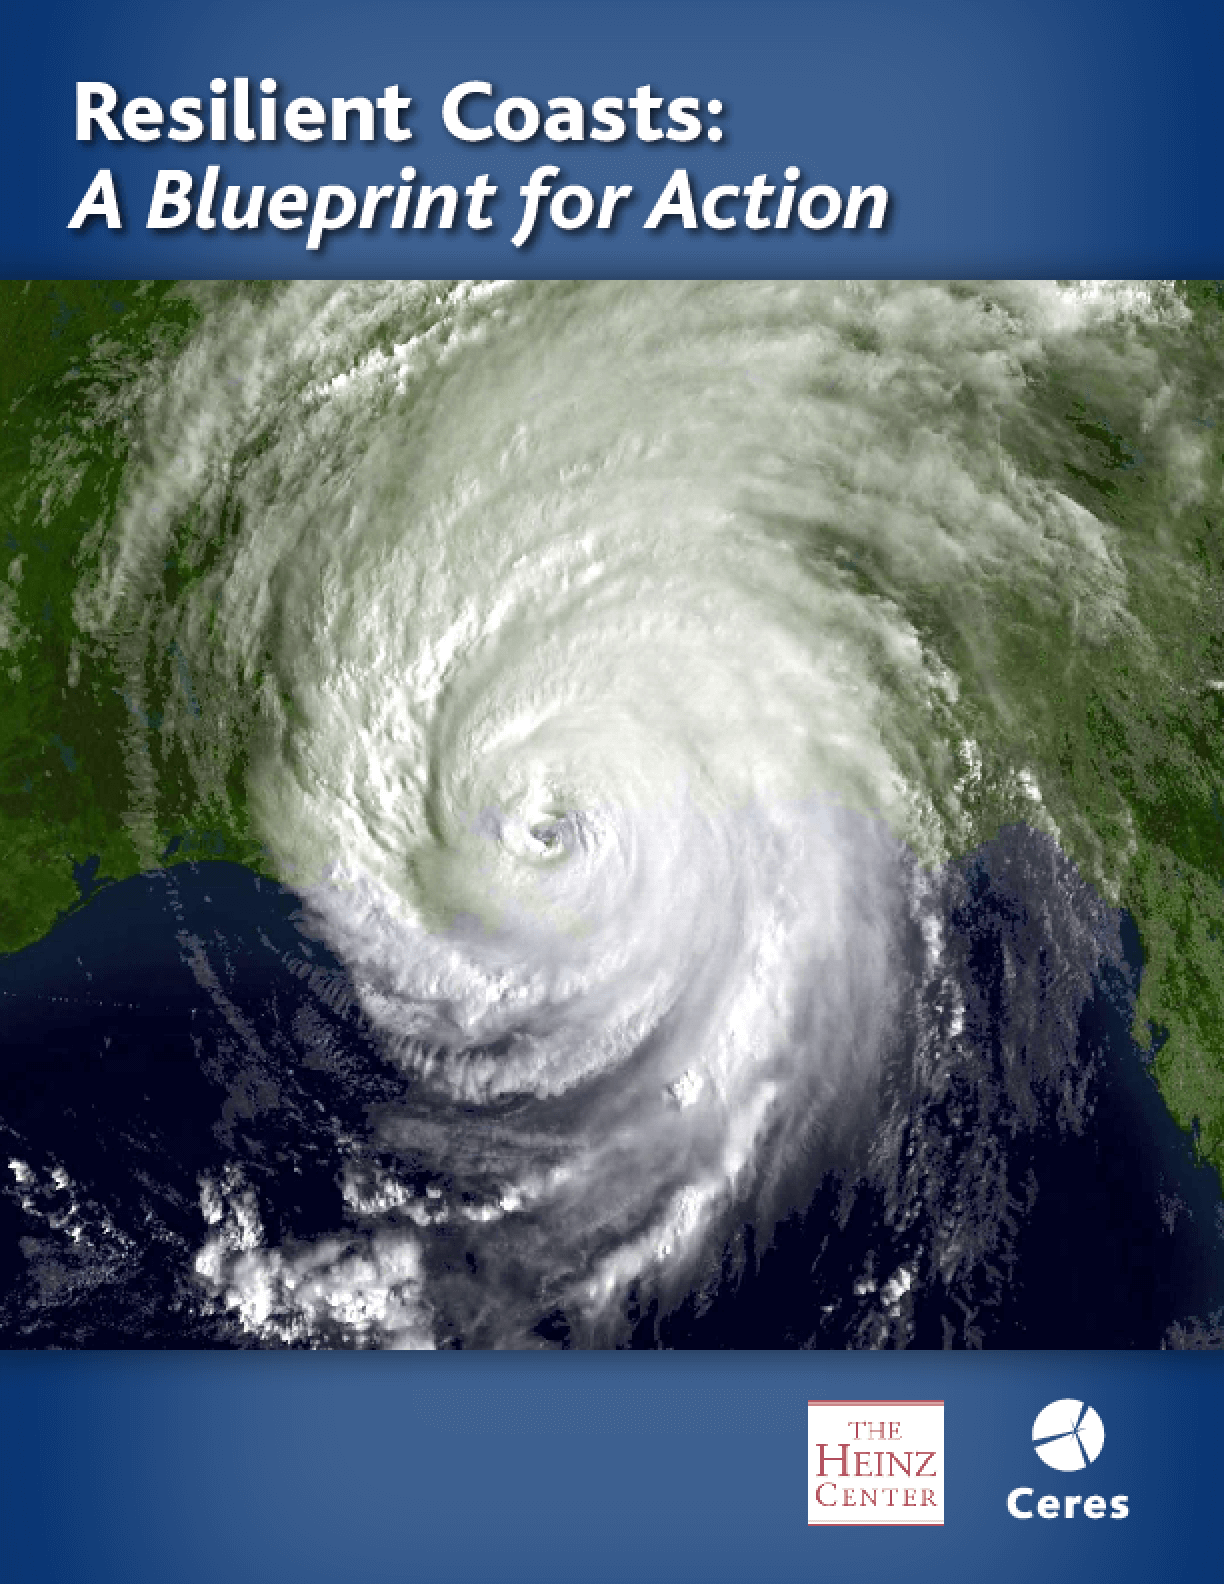 Resilient Coasts: A Blueprint for Action